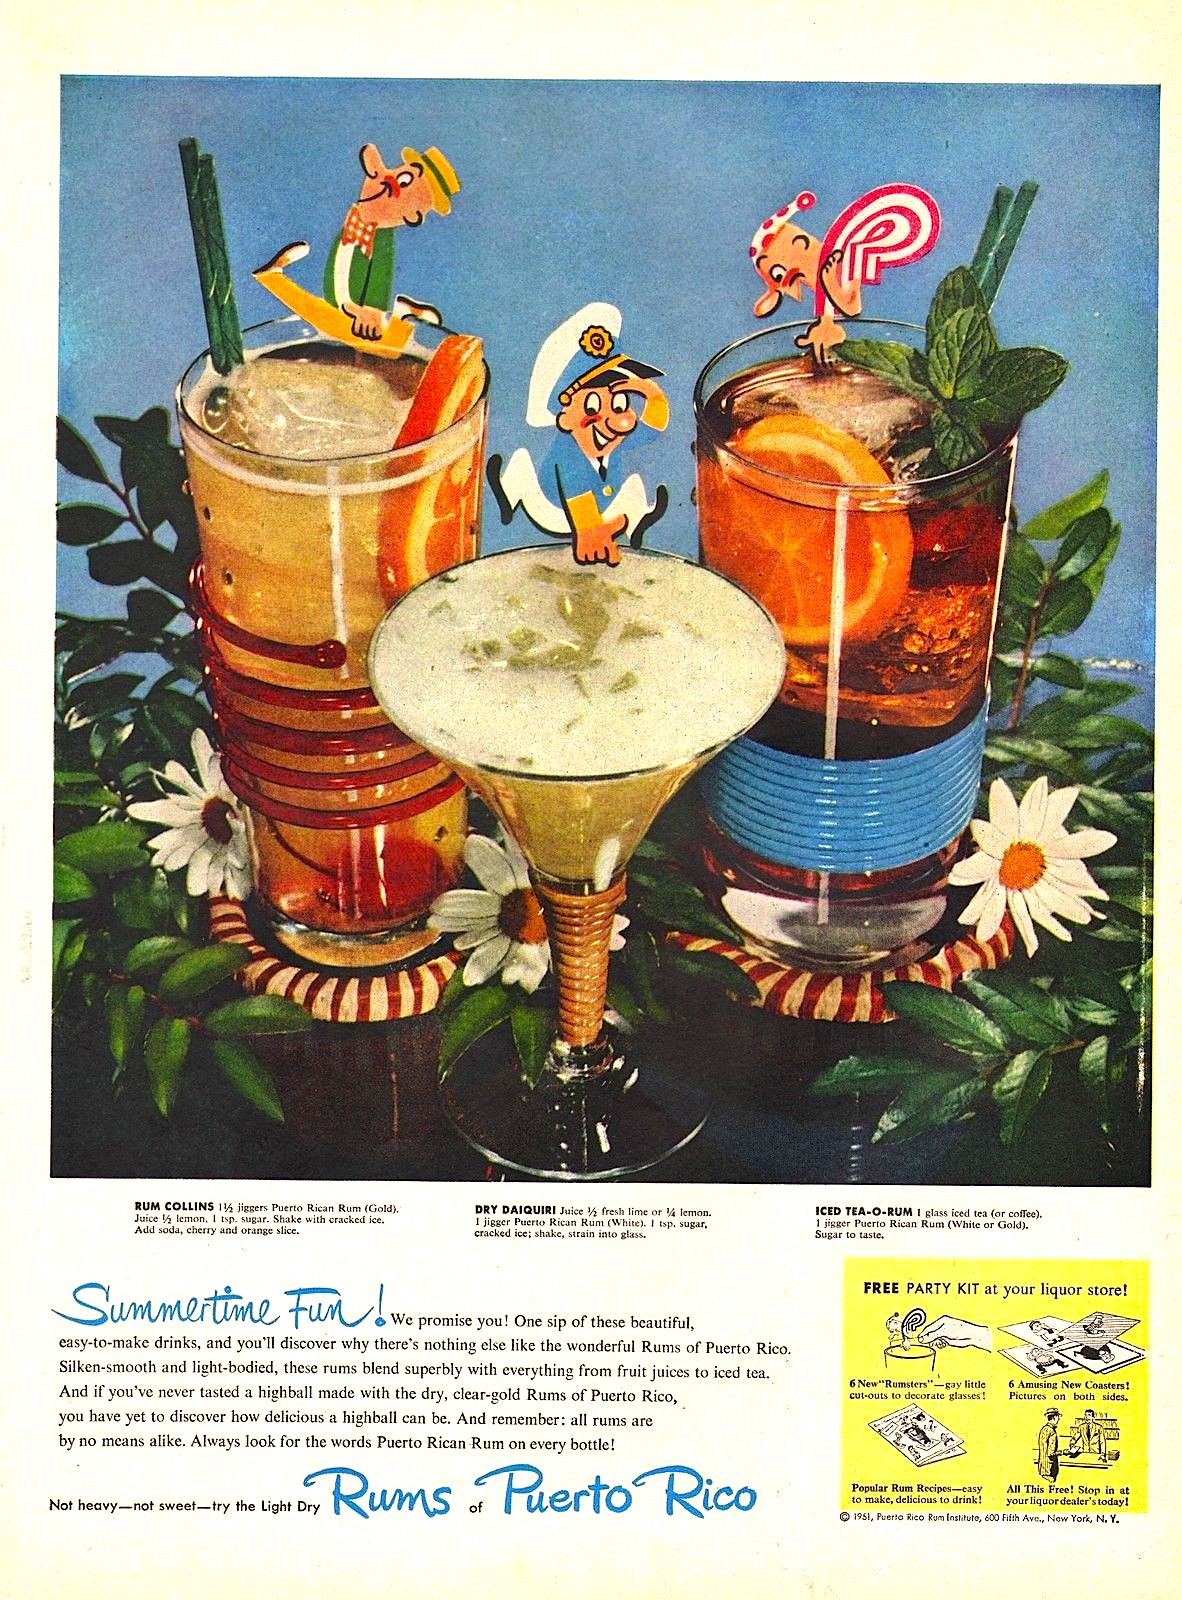 Rums of Puerto Rico ad, 1951